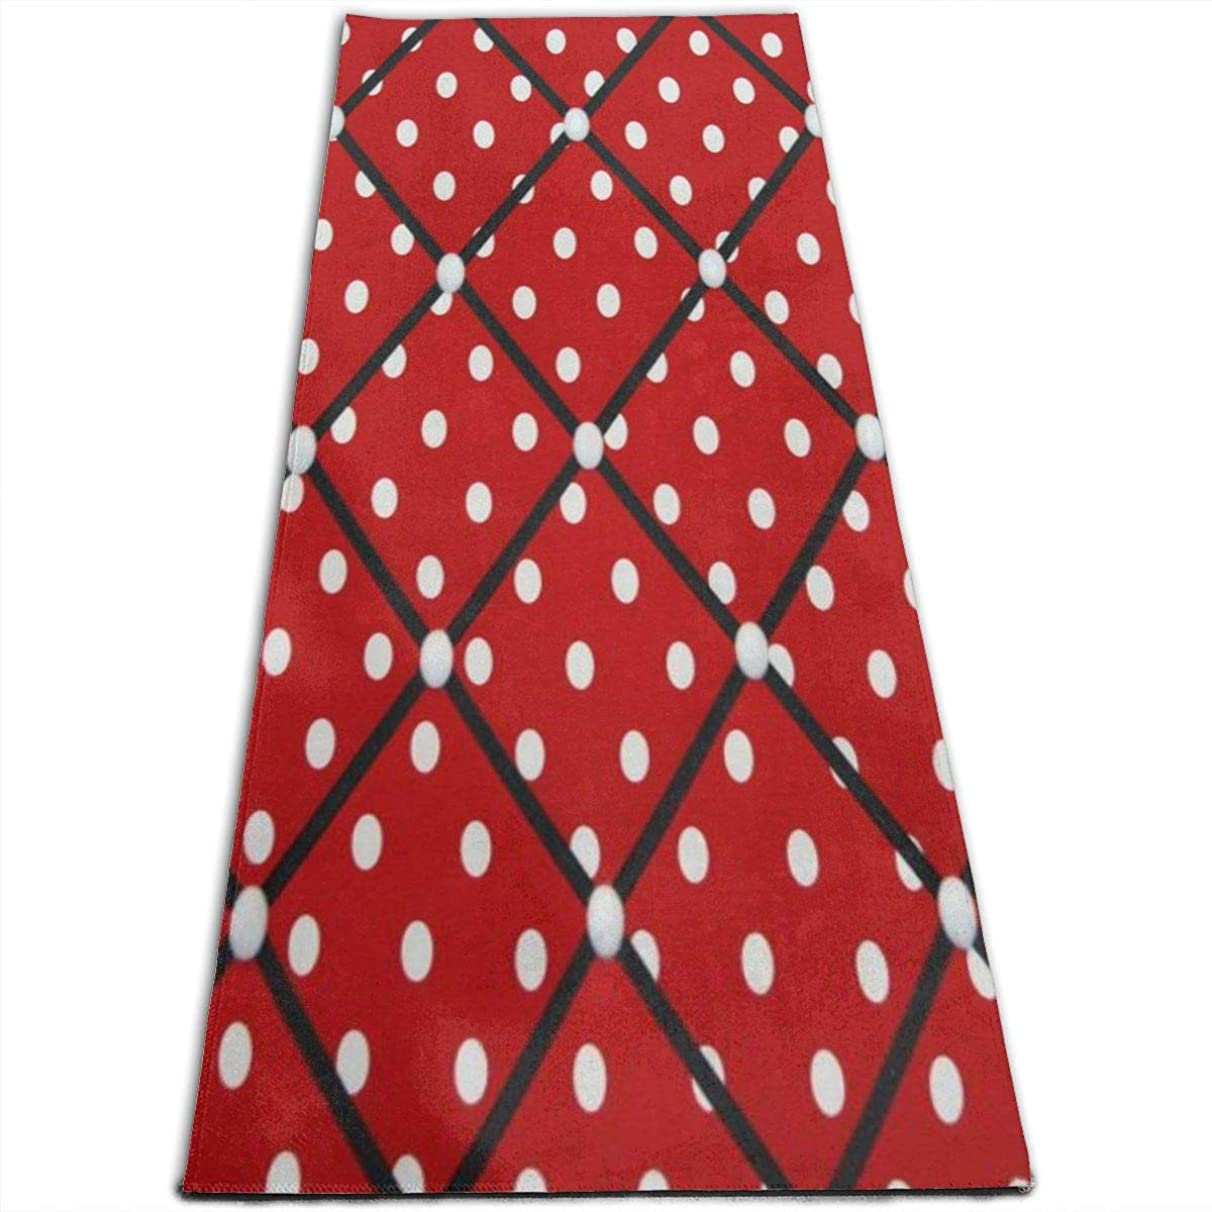 EJudge Yoga Mat Red White Polka Dot Unique 1/4-Inch Thick Exercise Mats for Pilates, Fitness & Workout